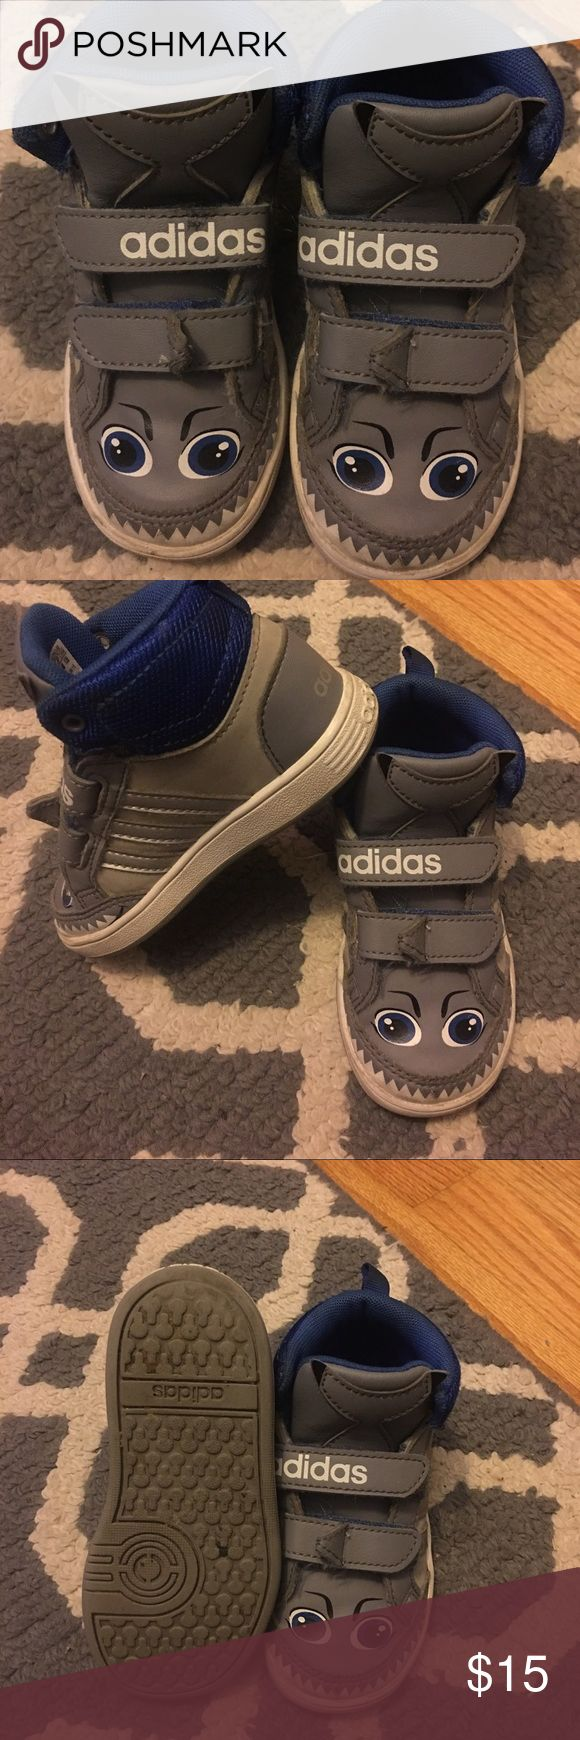 Adidas Neo High Top Shark Sneakers 7c Adidas High Top Neo Shark Sneakers/size 7c/some signs of wear but it overall good condition for boys' used Sneakers  Adidas Shoes Sneakers